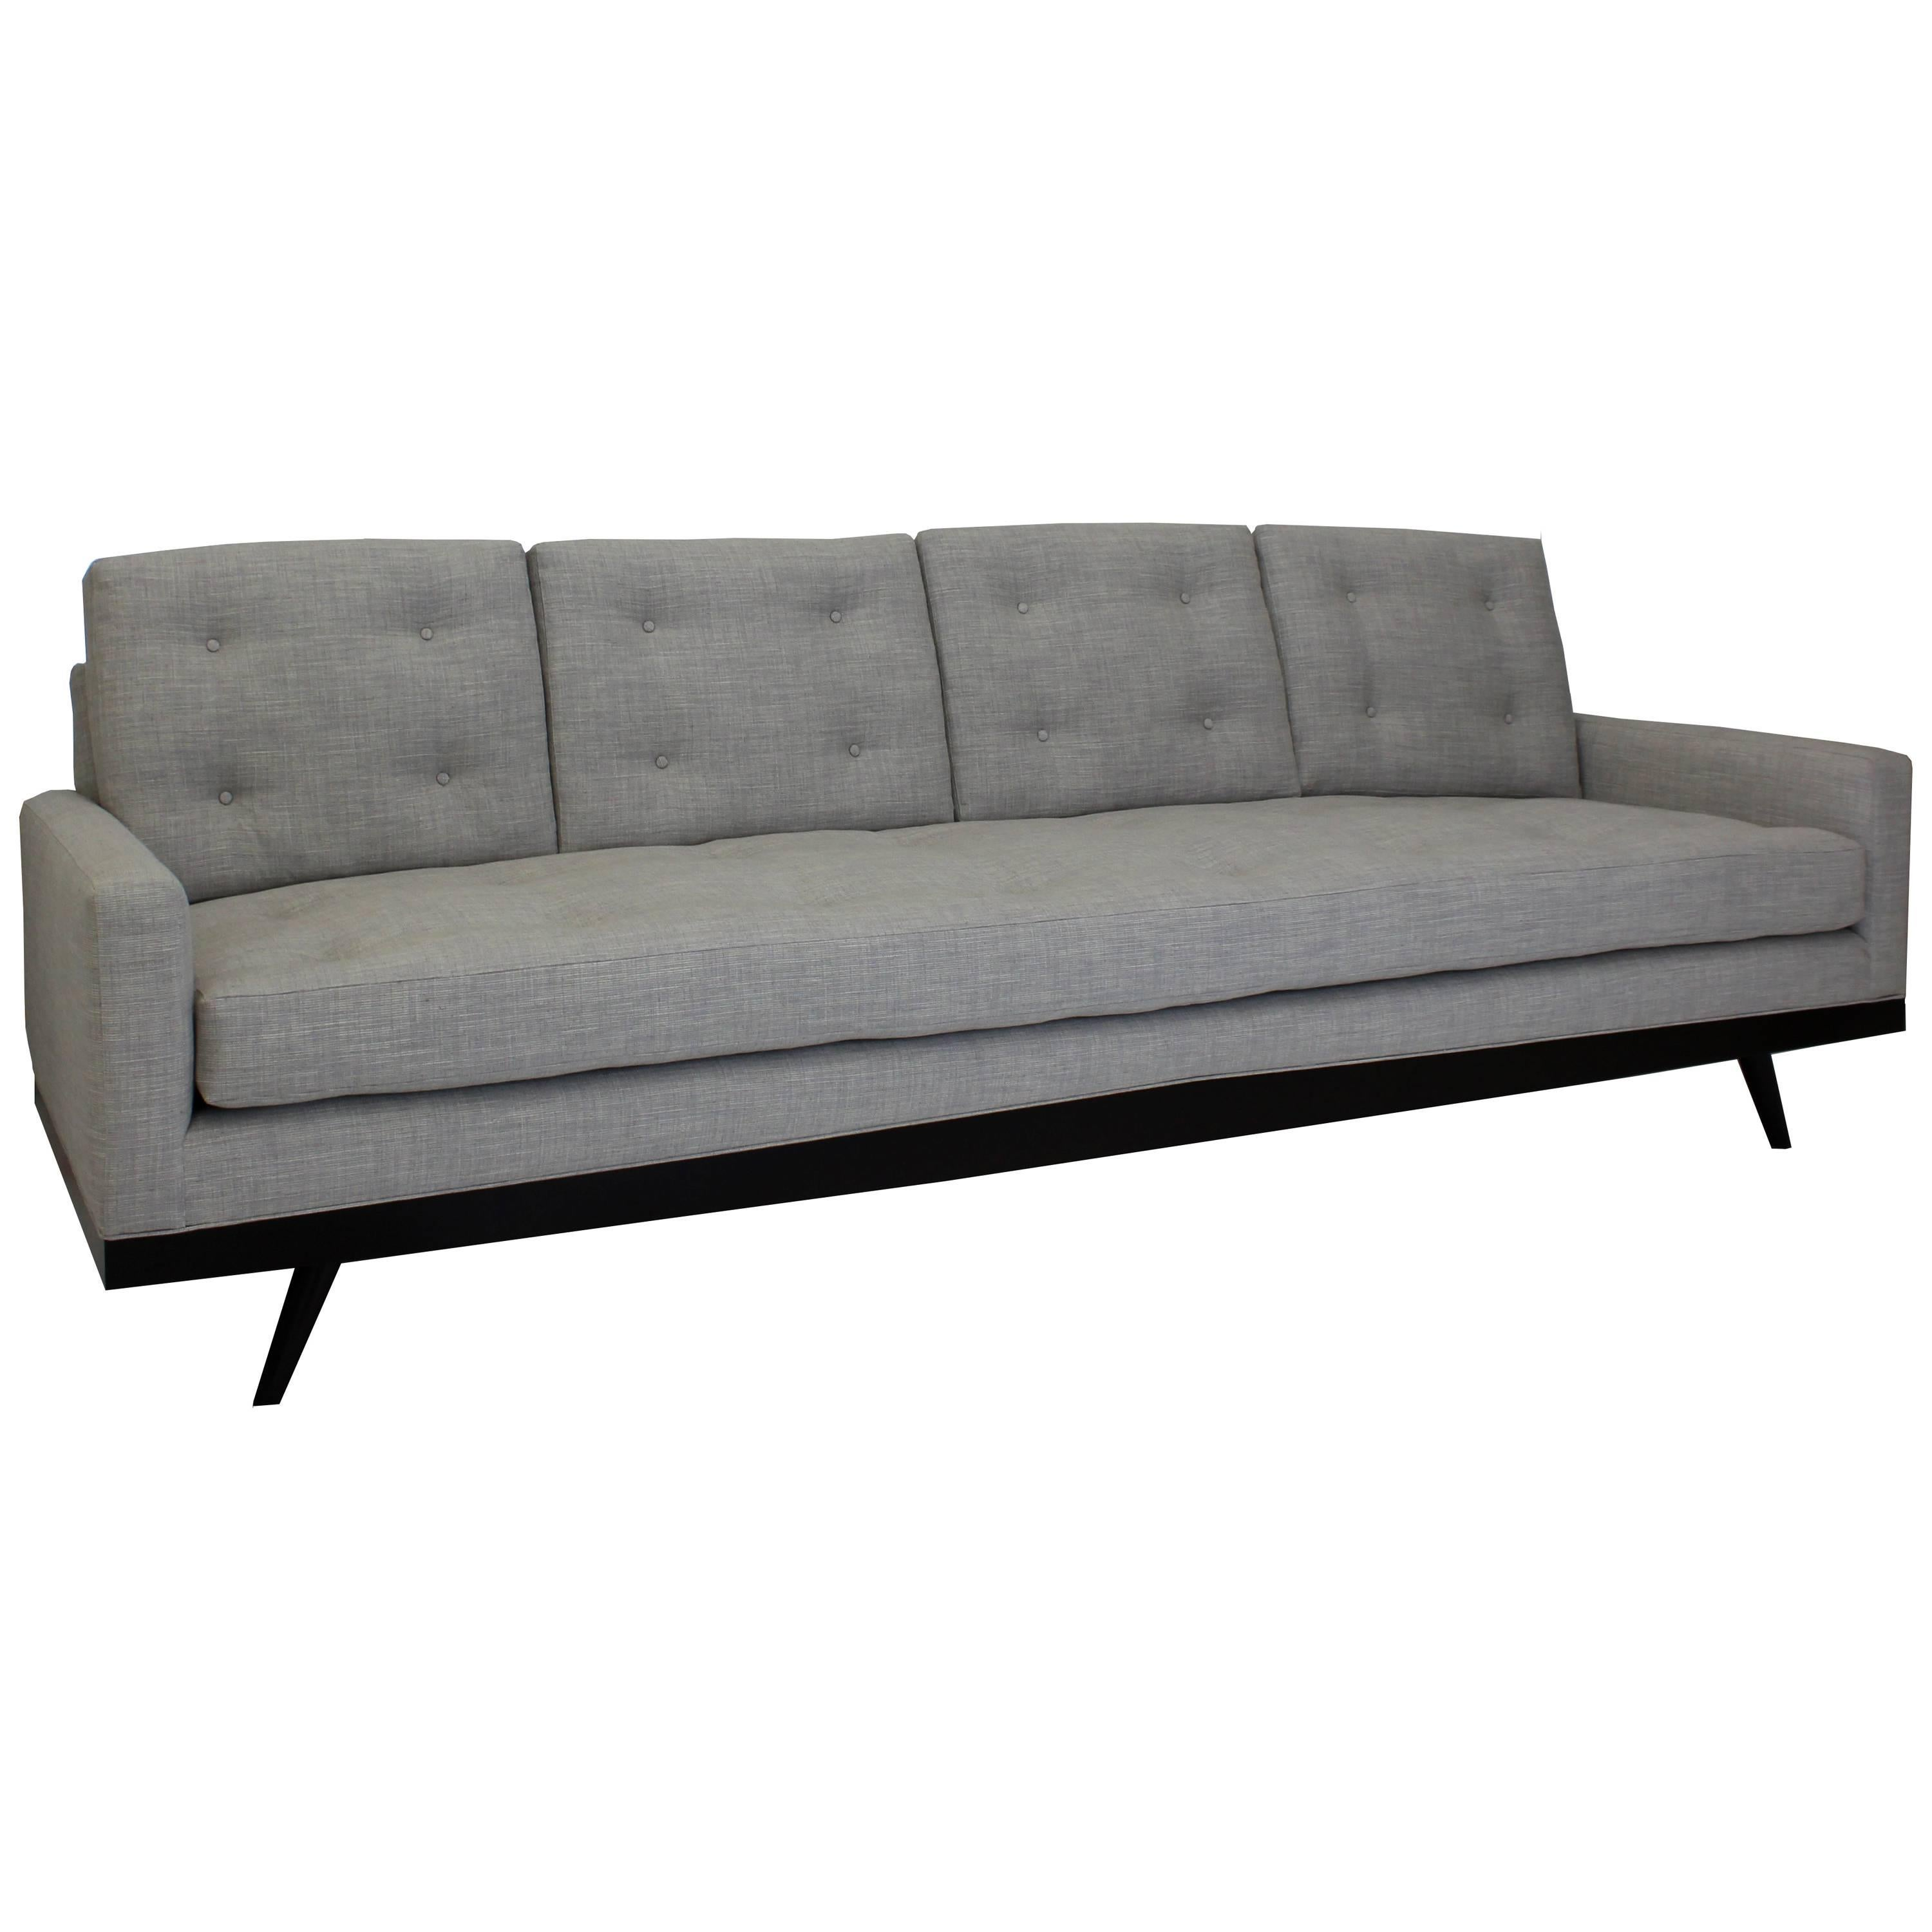 Mid-Century Modern Inspired Sofa With Button Tufting